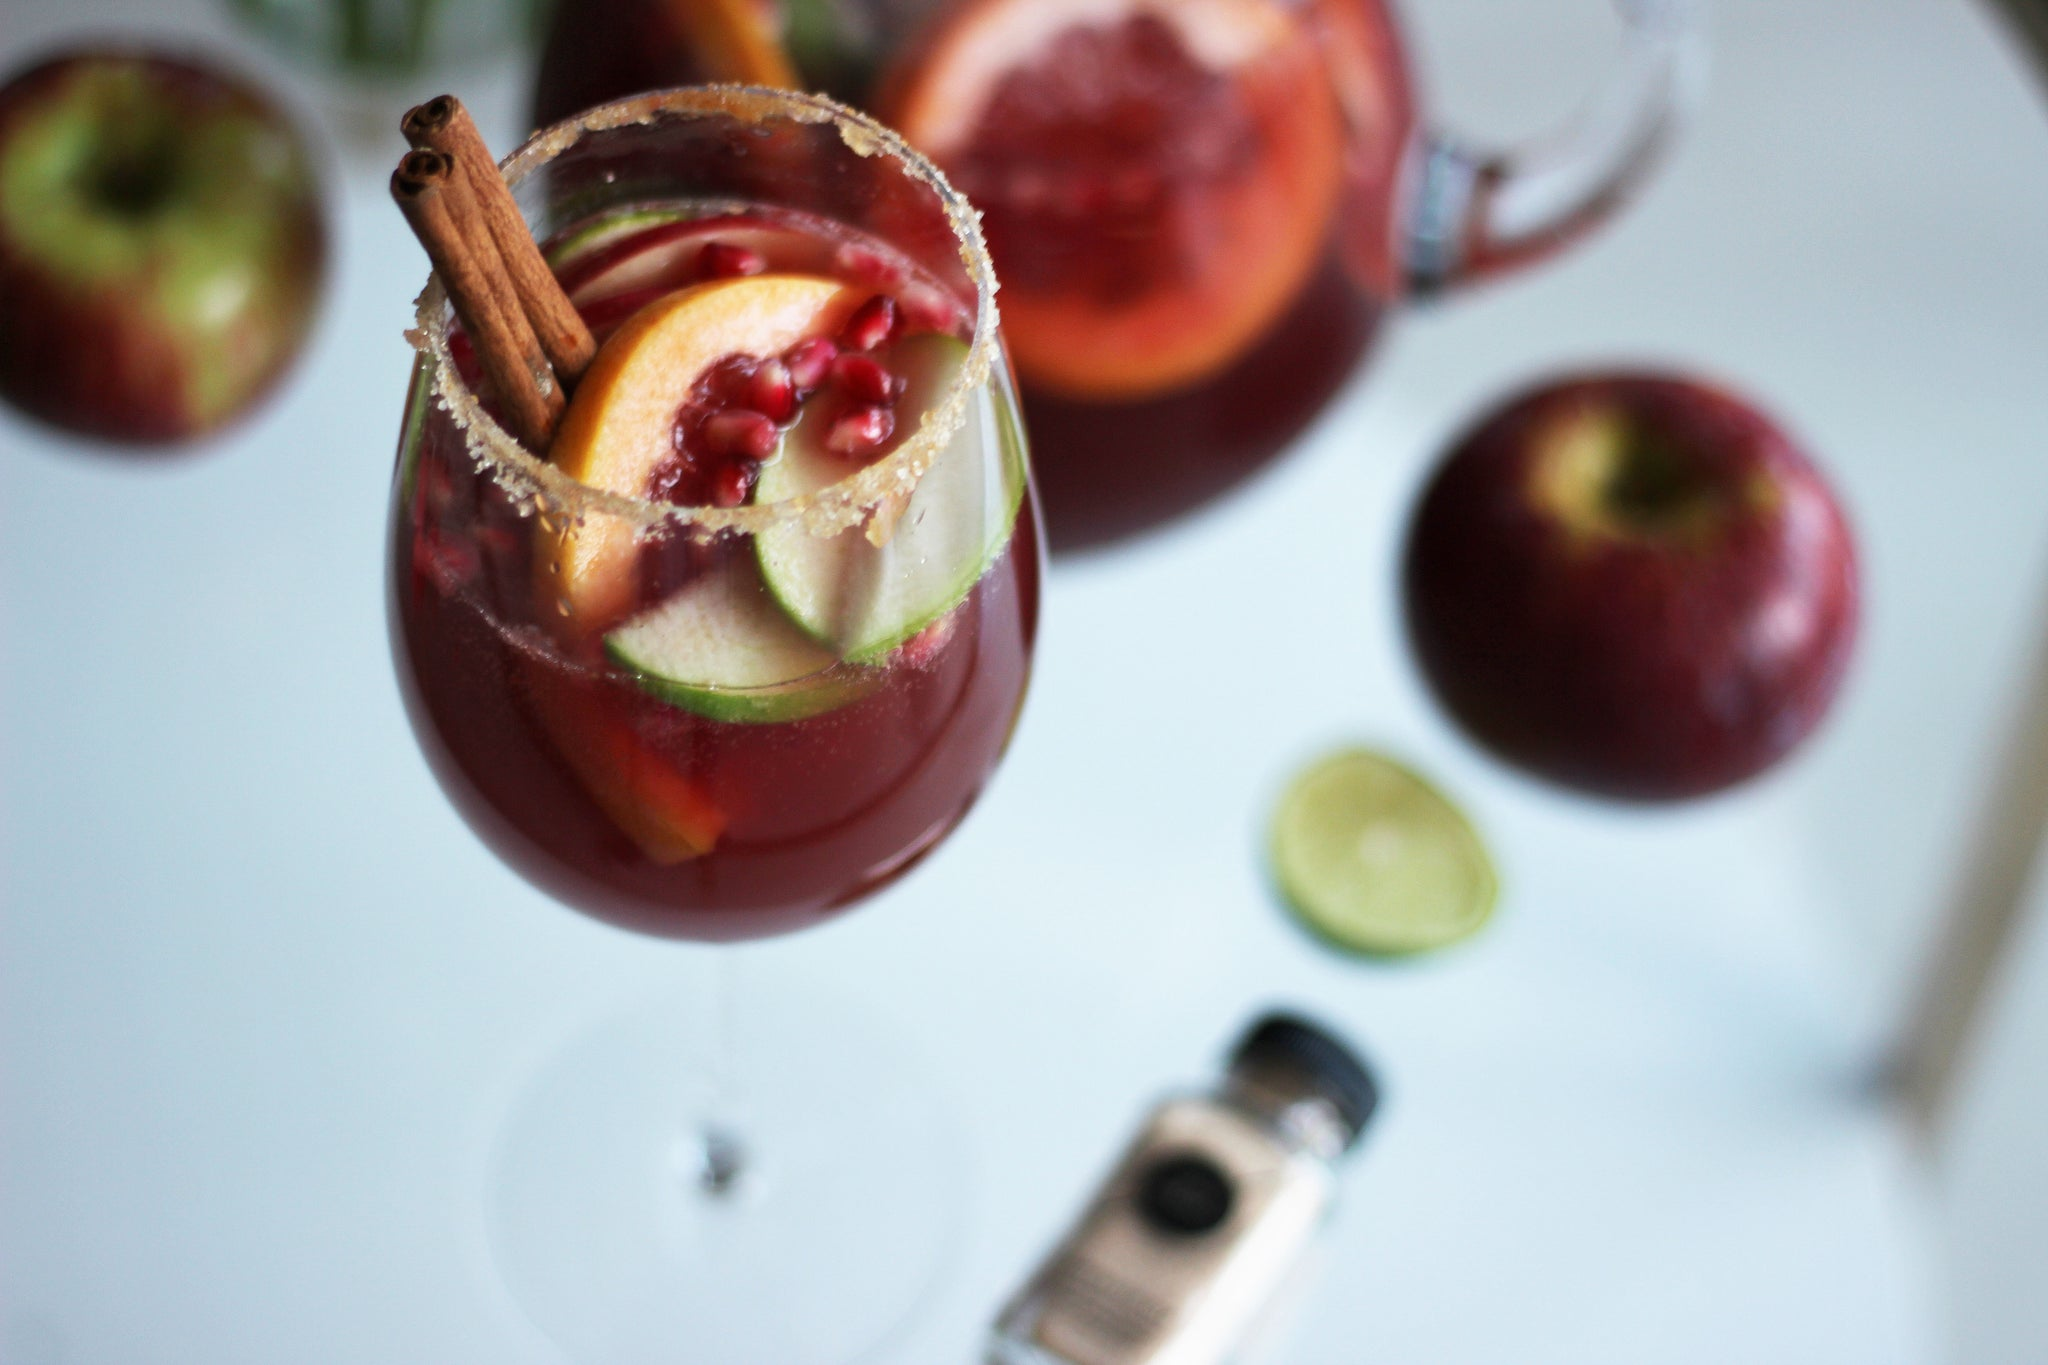 salty paloma pomegranate apple sangria mocktail cocktail recipe